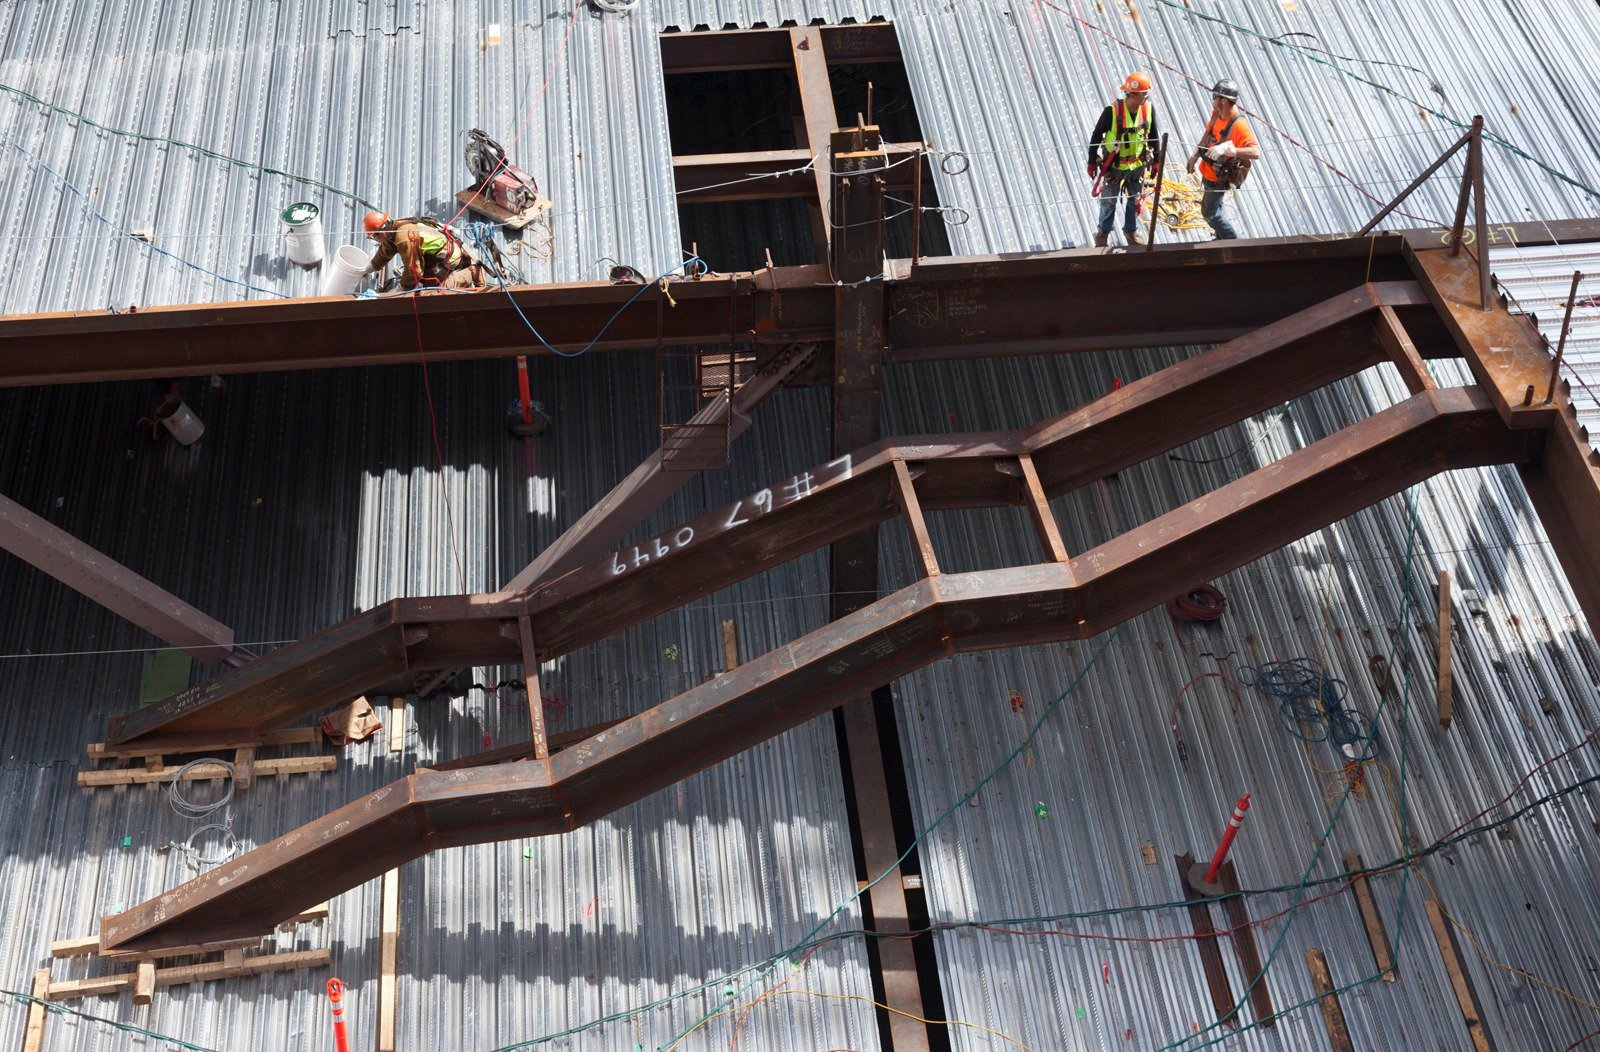 Steel beams form the beginnings of a staircase with construction workers wearing hardhats